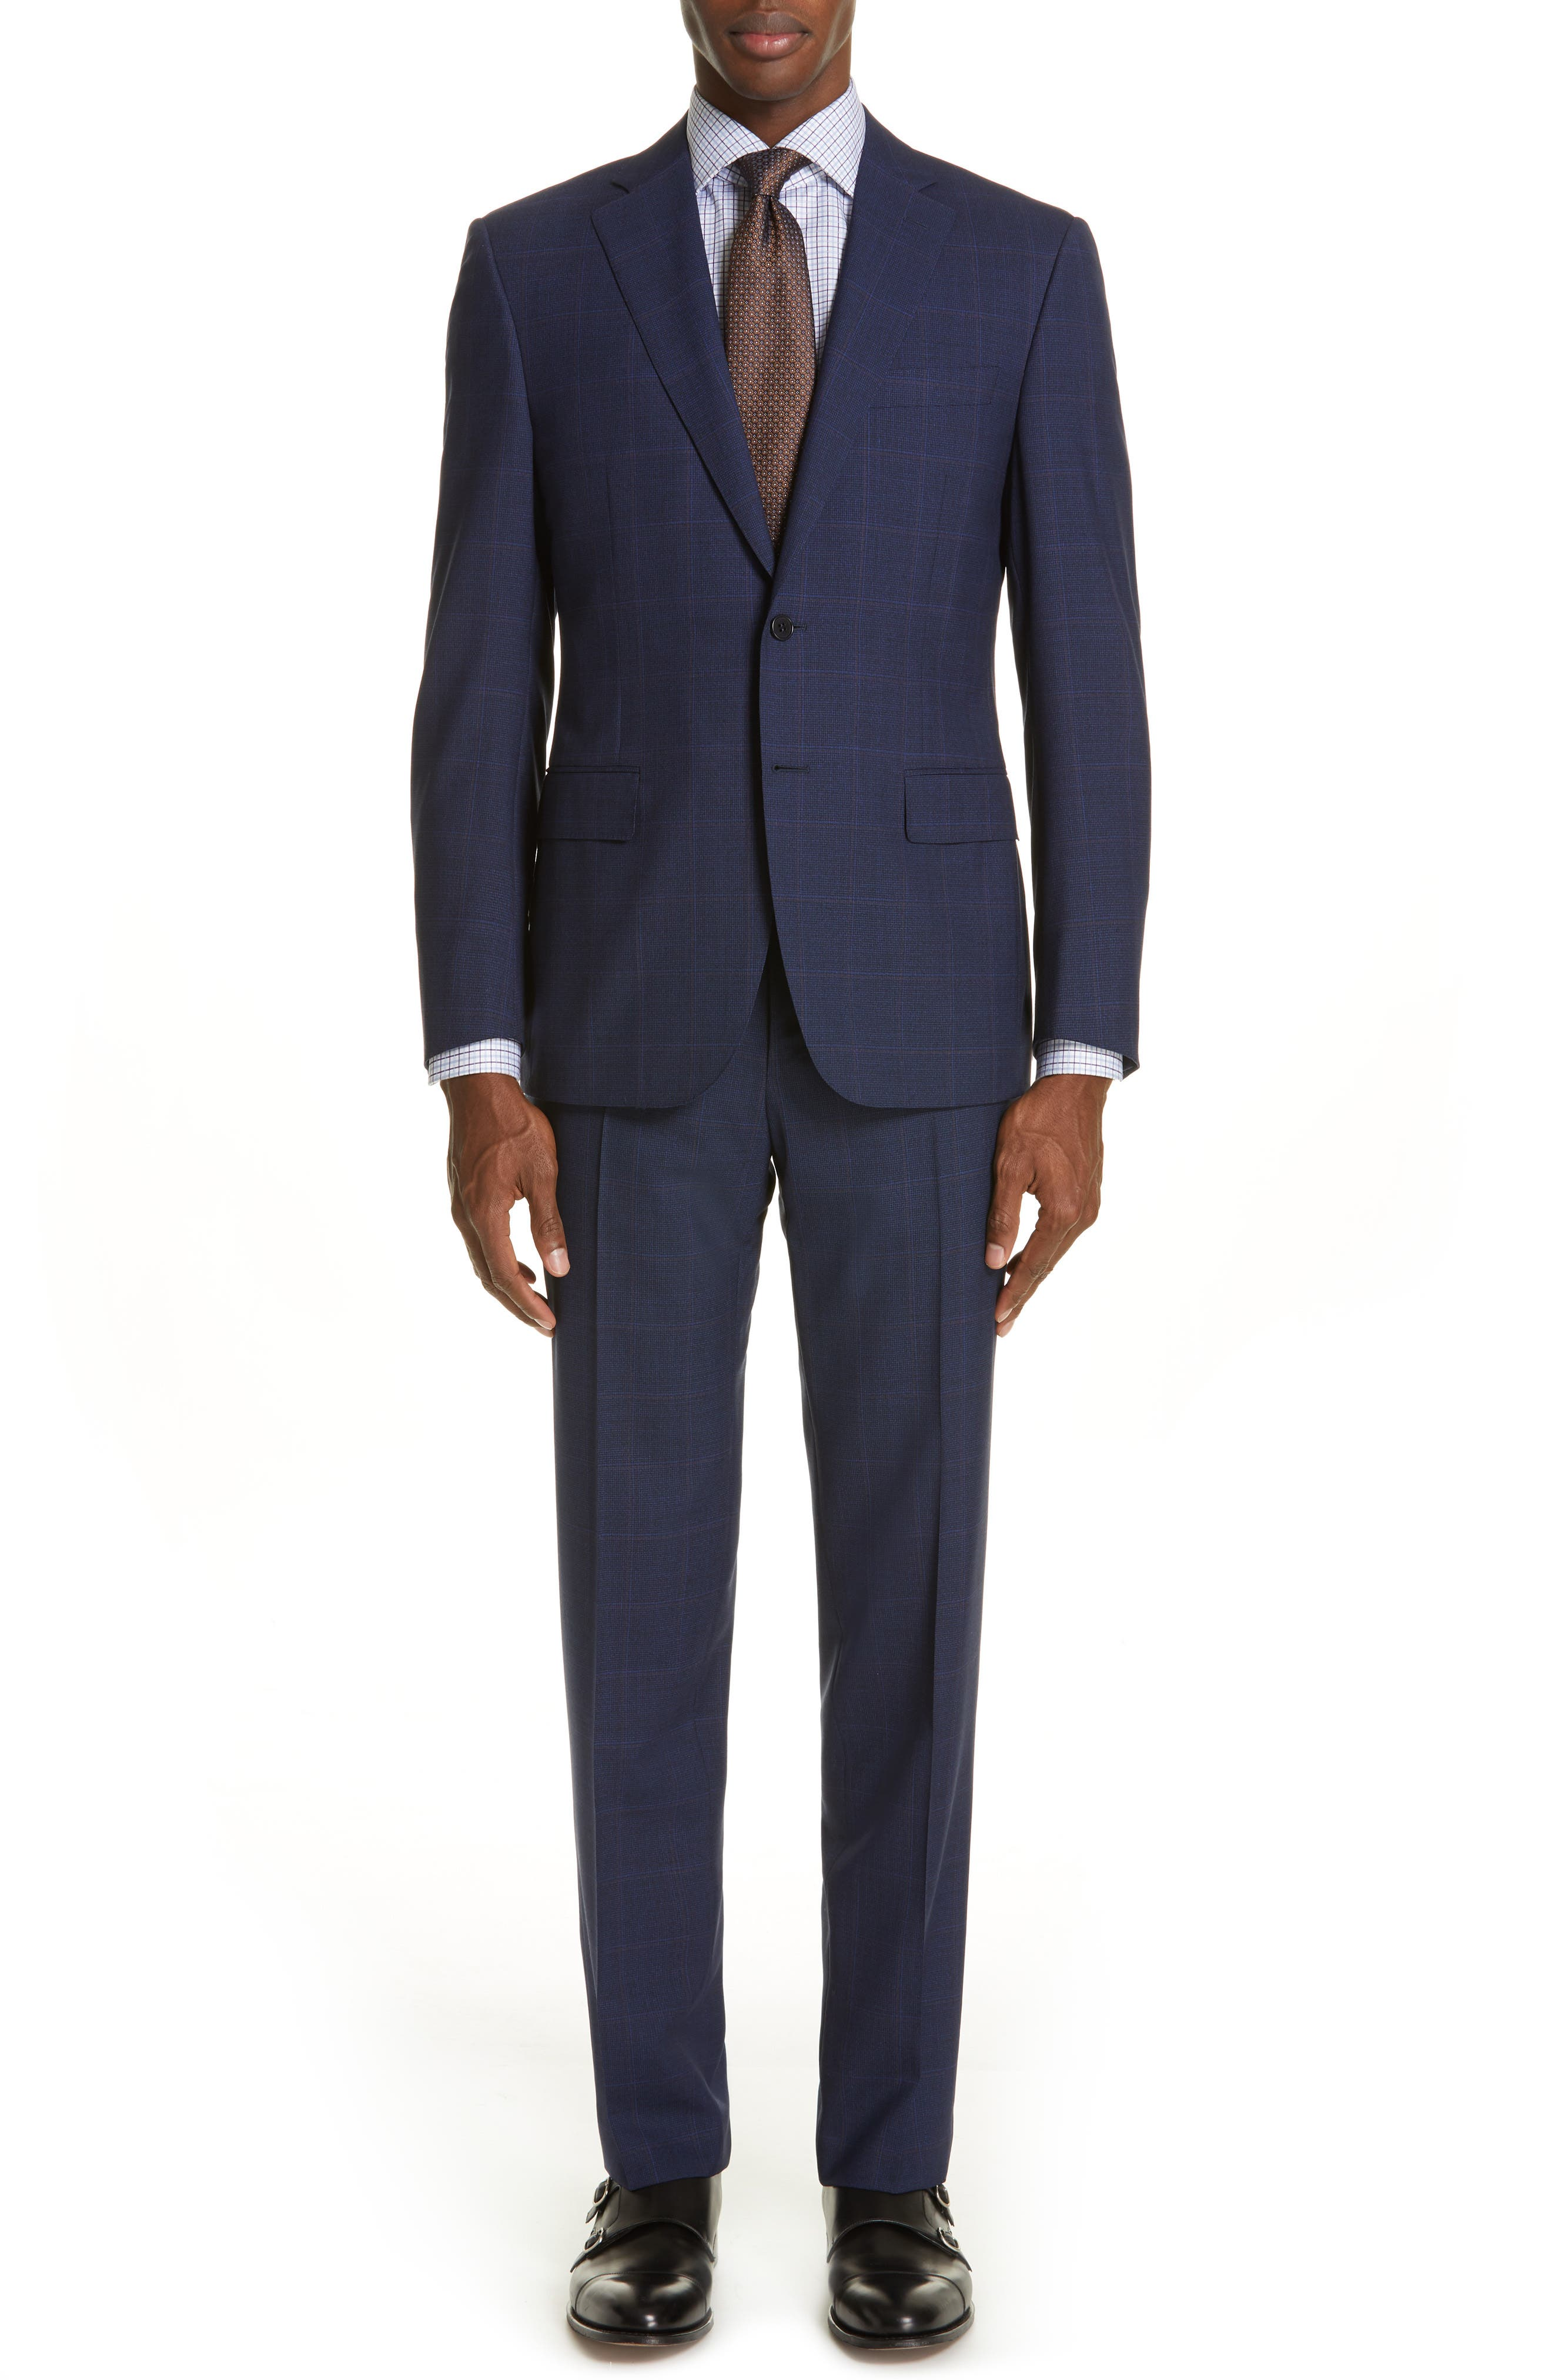 CANALI, Siena Soft Classic Fit Plaid Wool Suit, Main thumbnail 1, color, NAVY